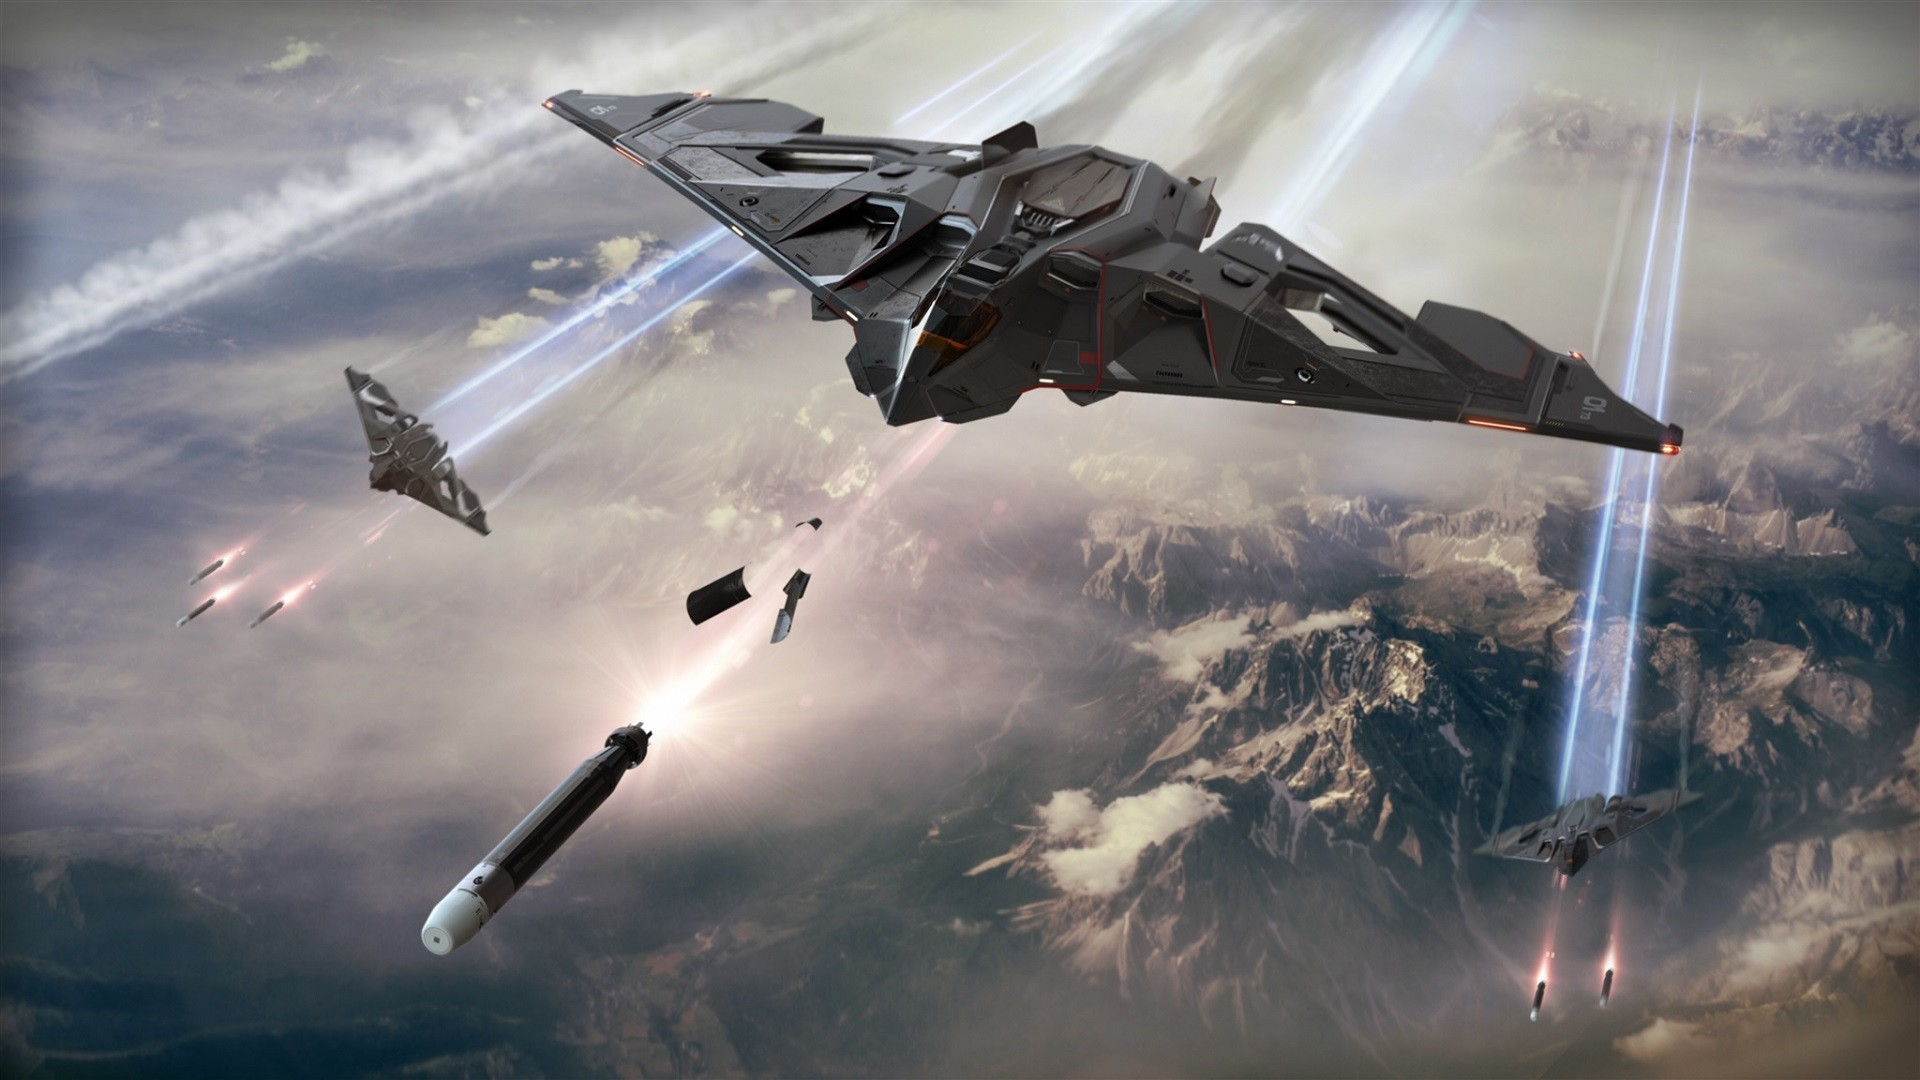 Gun Wallpaper 3d Crytek Sues Star Citizen Developer Cig Alleging Breach Of